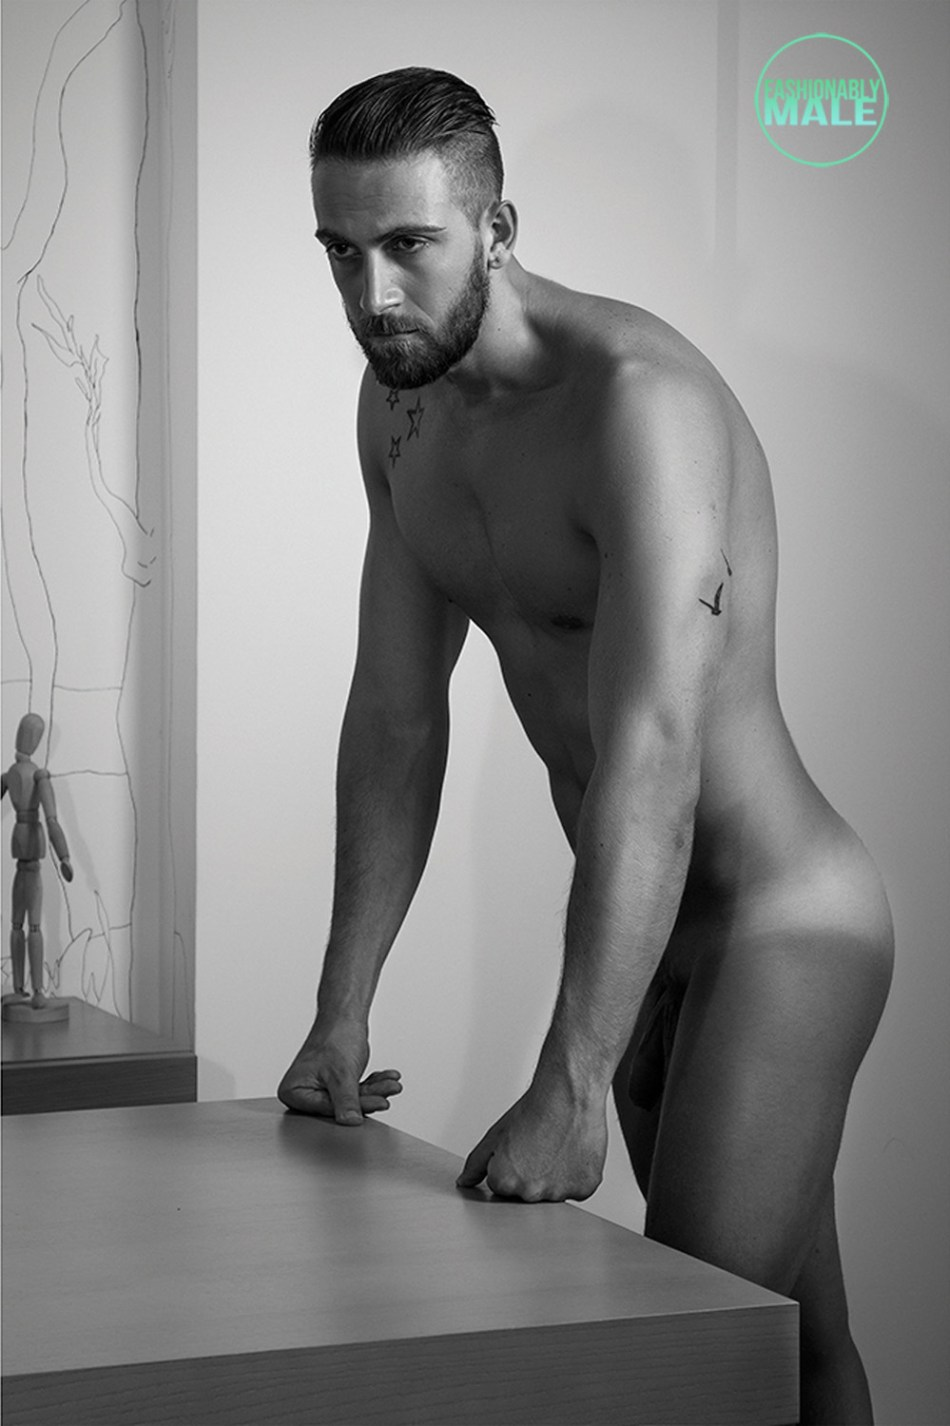 Steve Rogers by Alisson Marks for Fashionably Male13